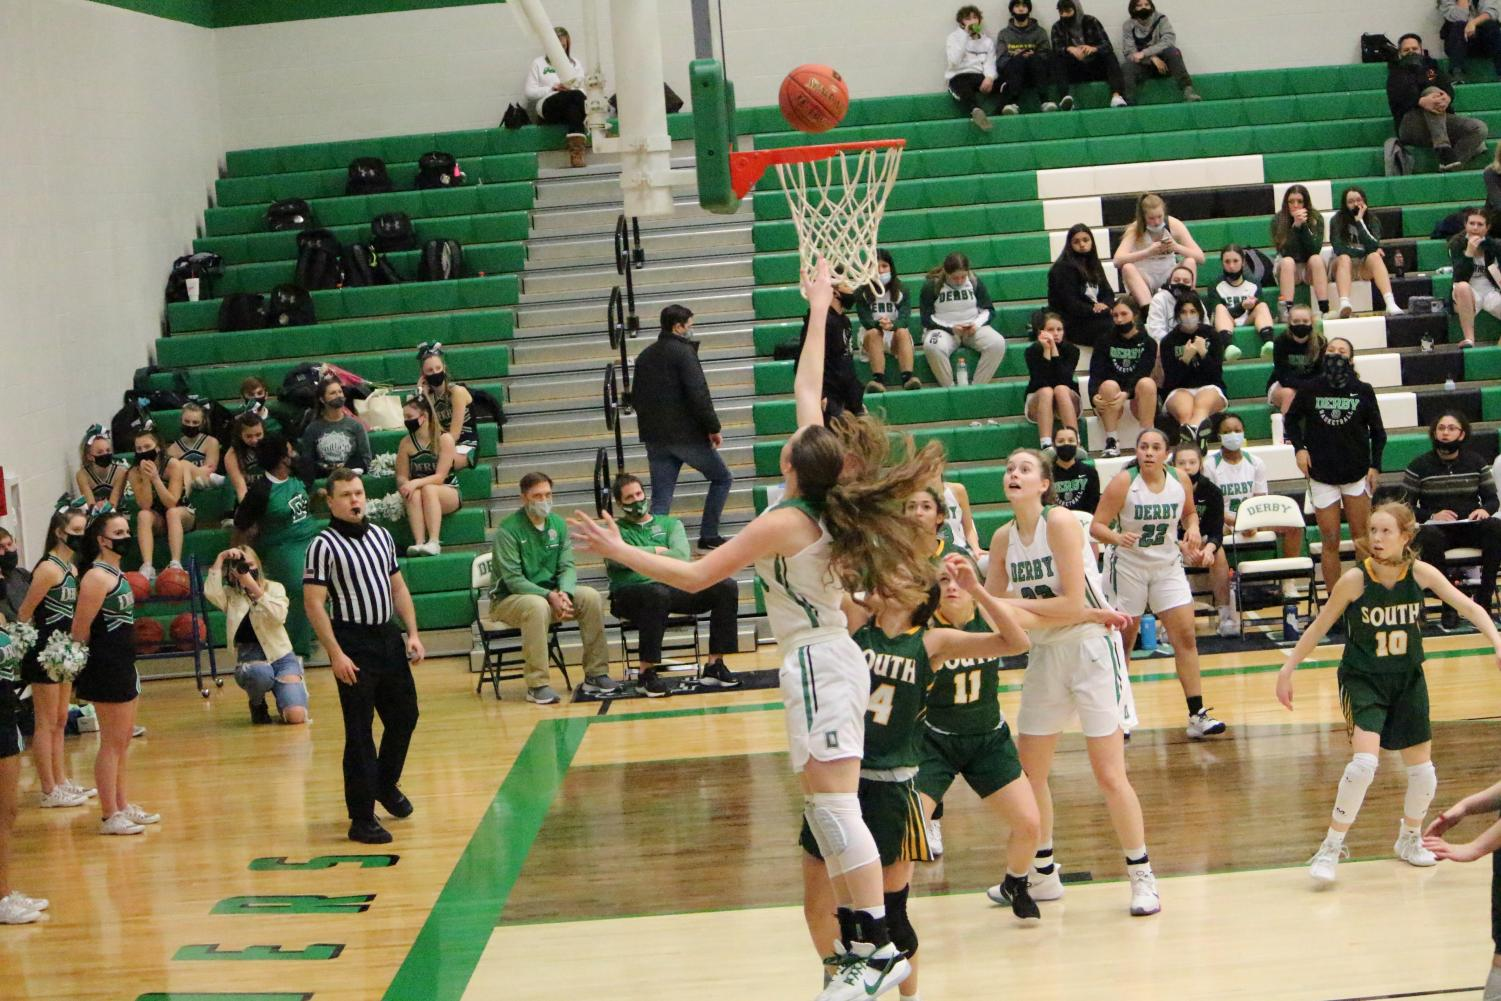 Girls+Varsity+Basketball+vs+Salina+South++%28Photos+by+Talia+Ransom%29